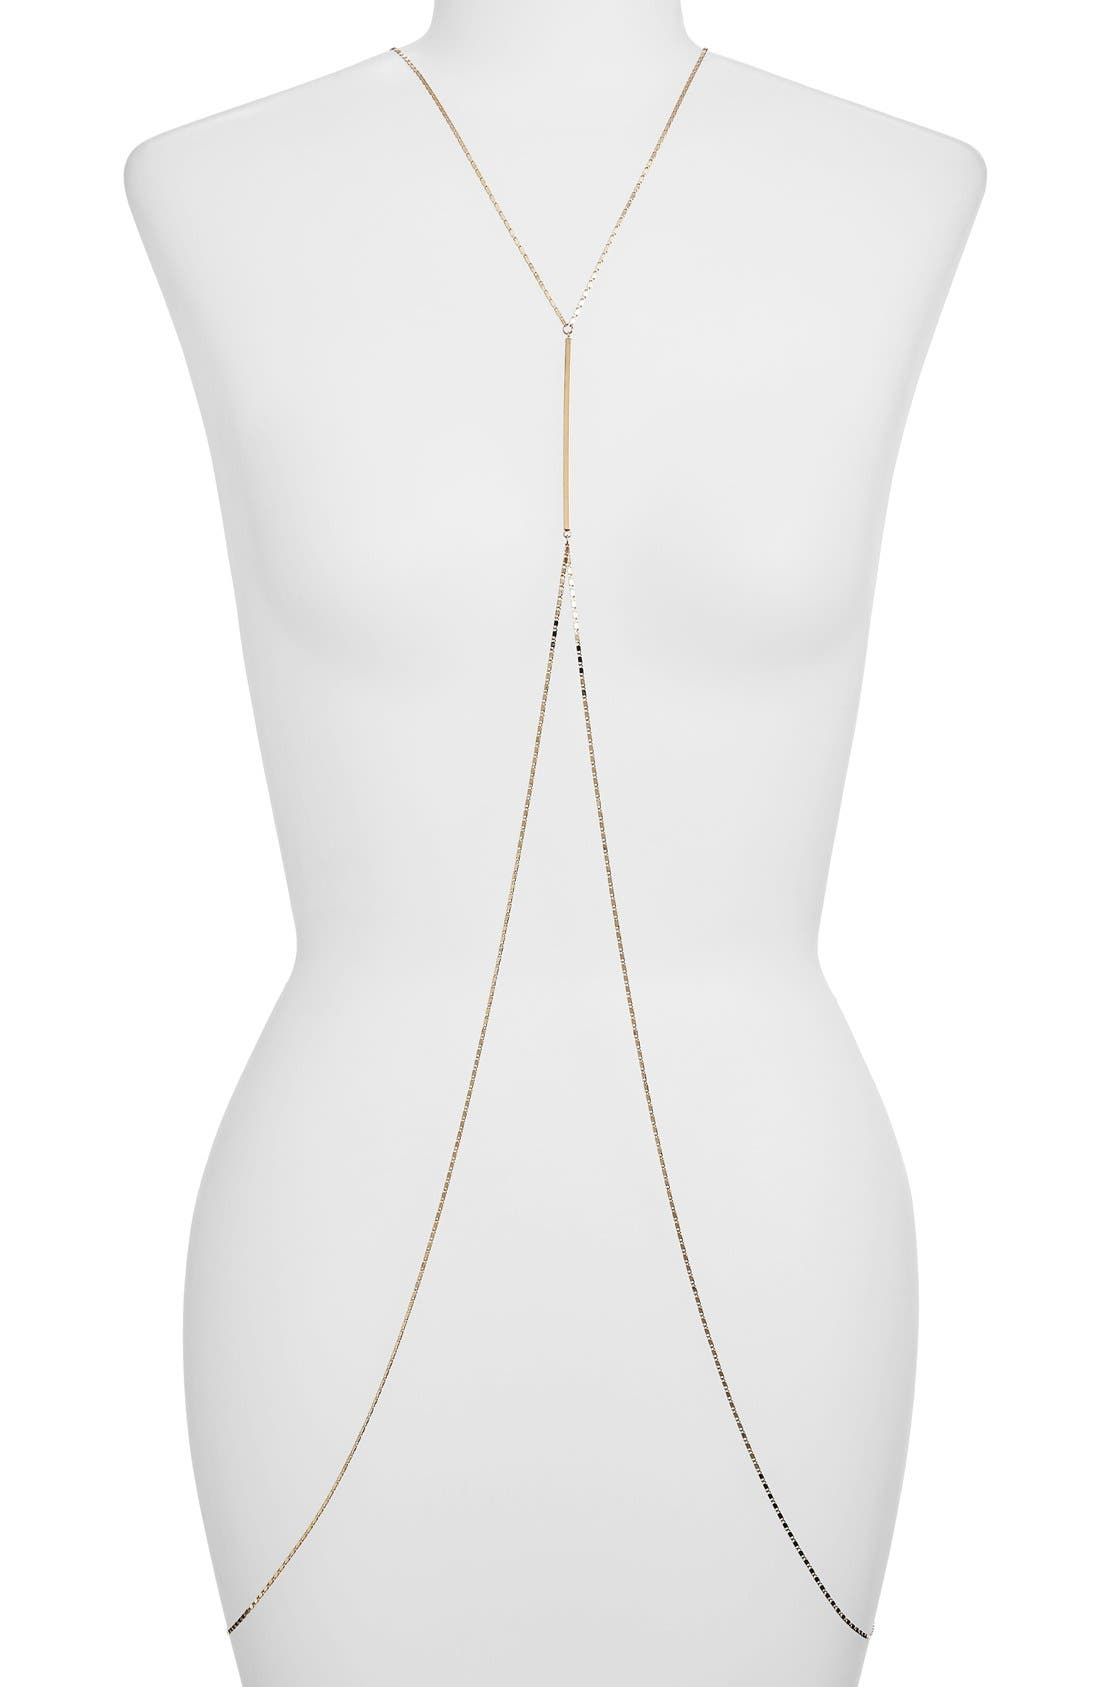 Alternate Image 1 Selected - Girly Body Chain